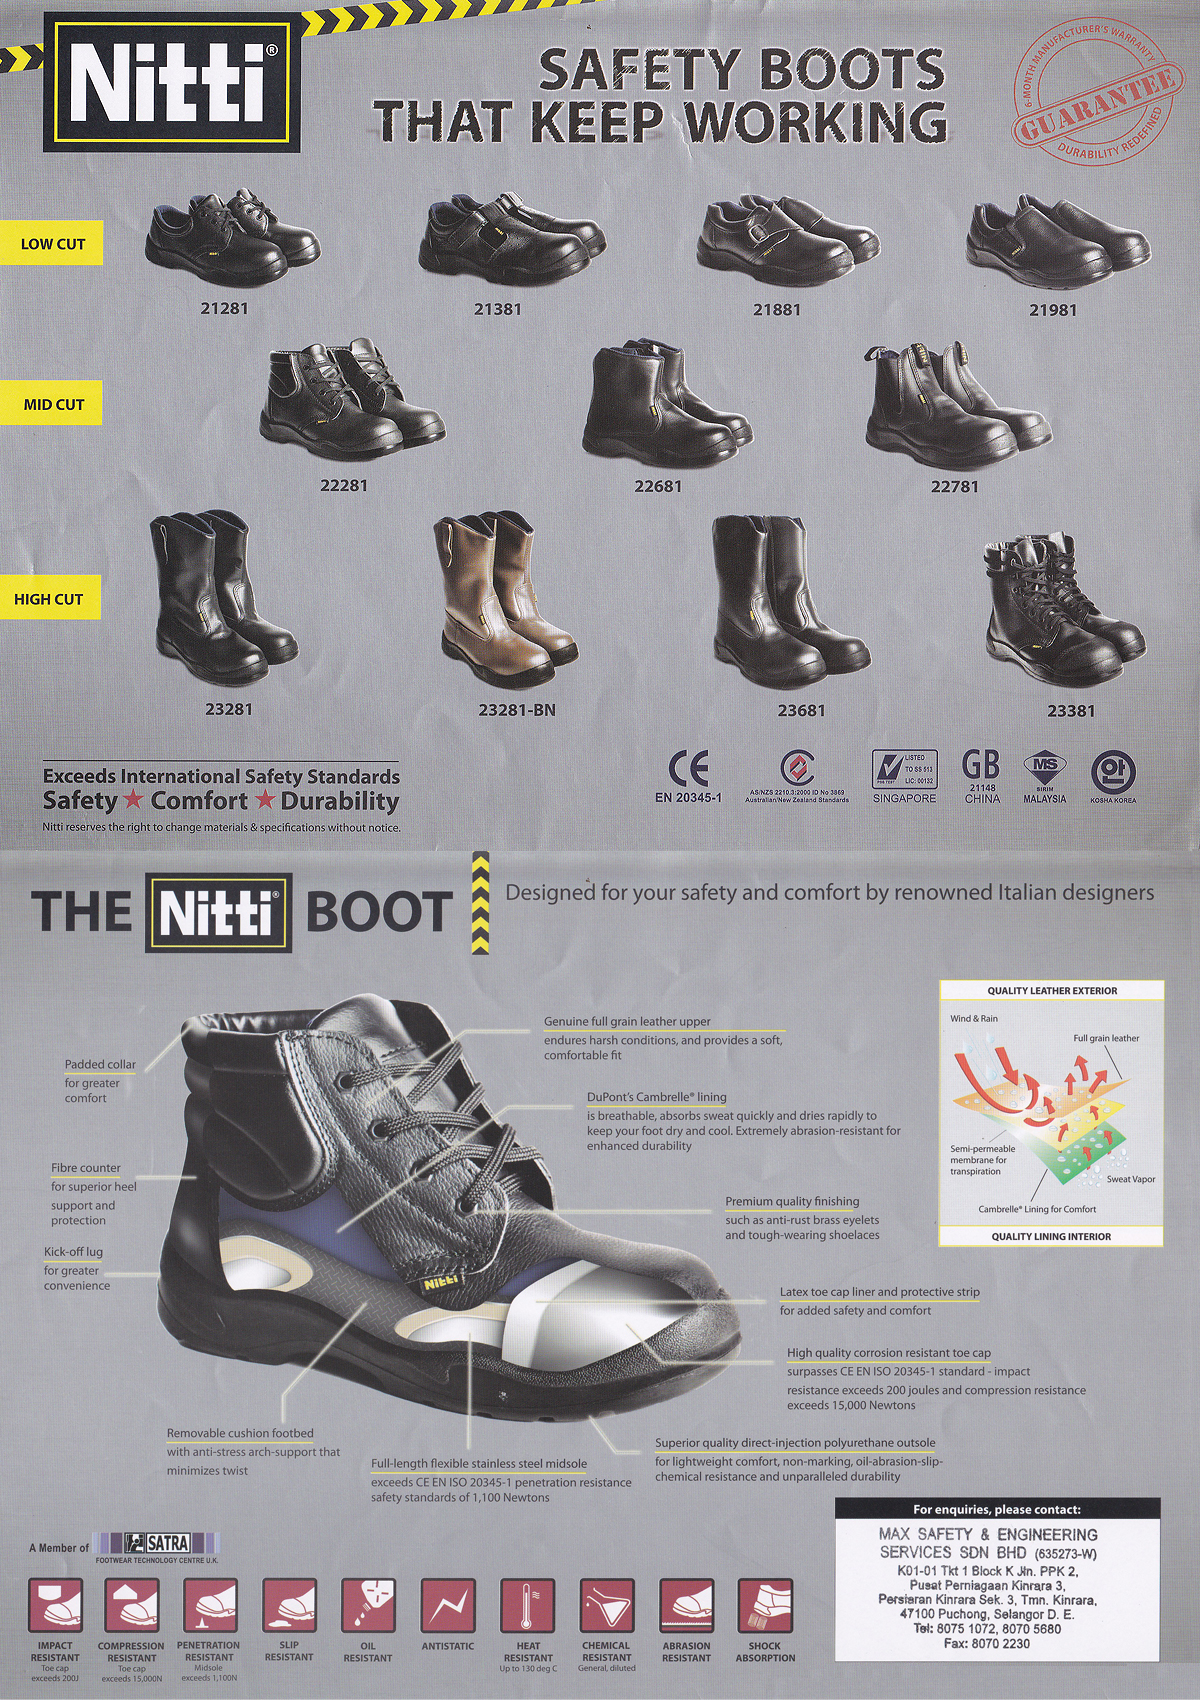 Nitti Safety Shoes Max Safety Amp Engineering Services